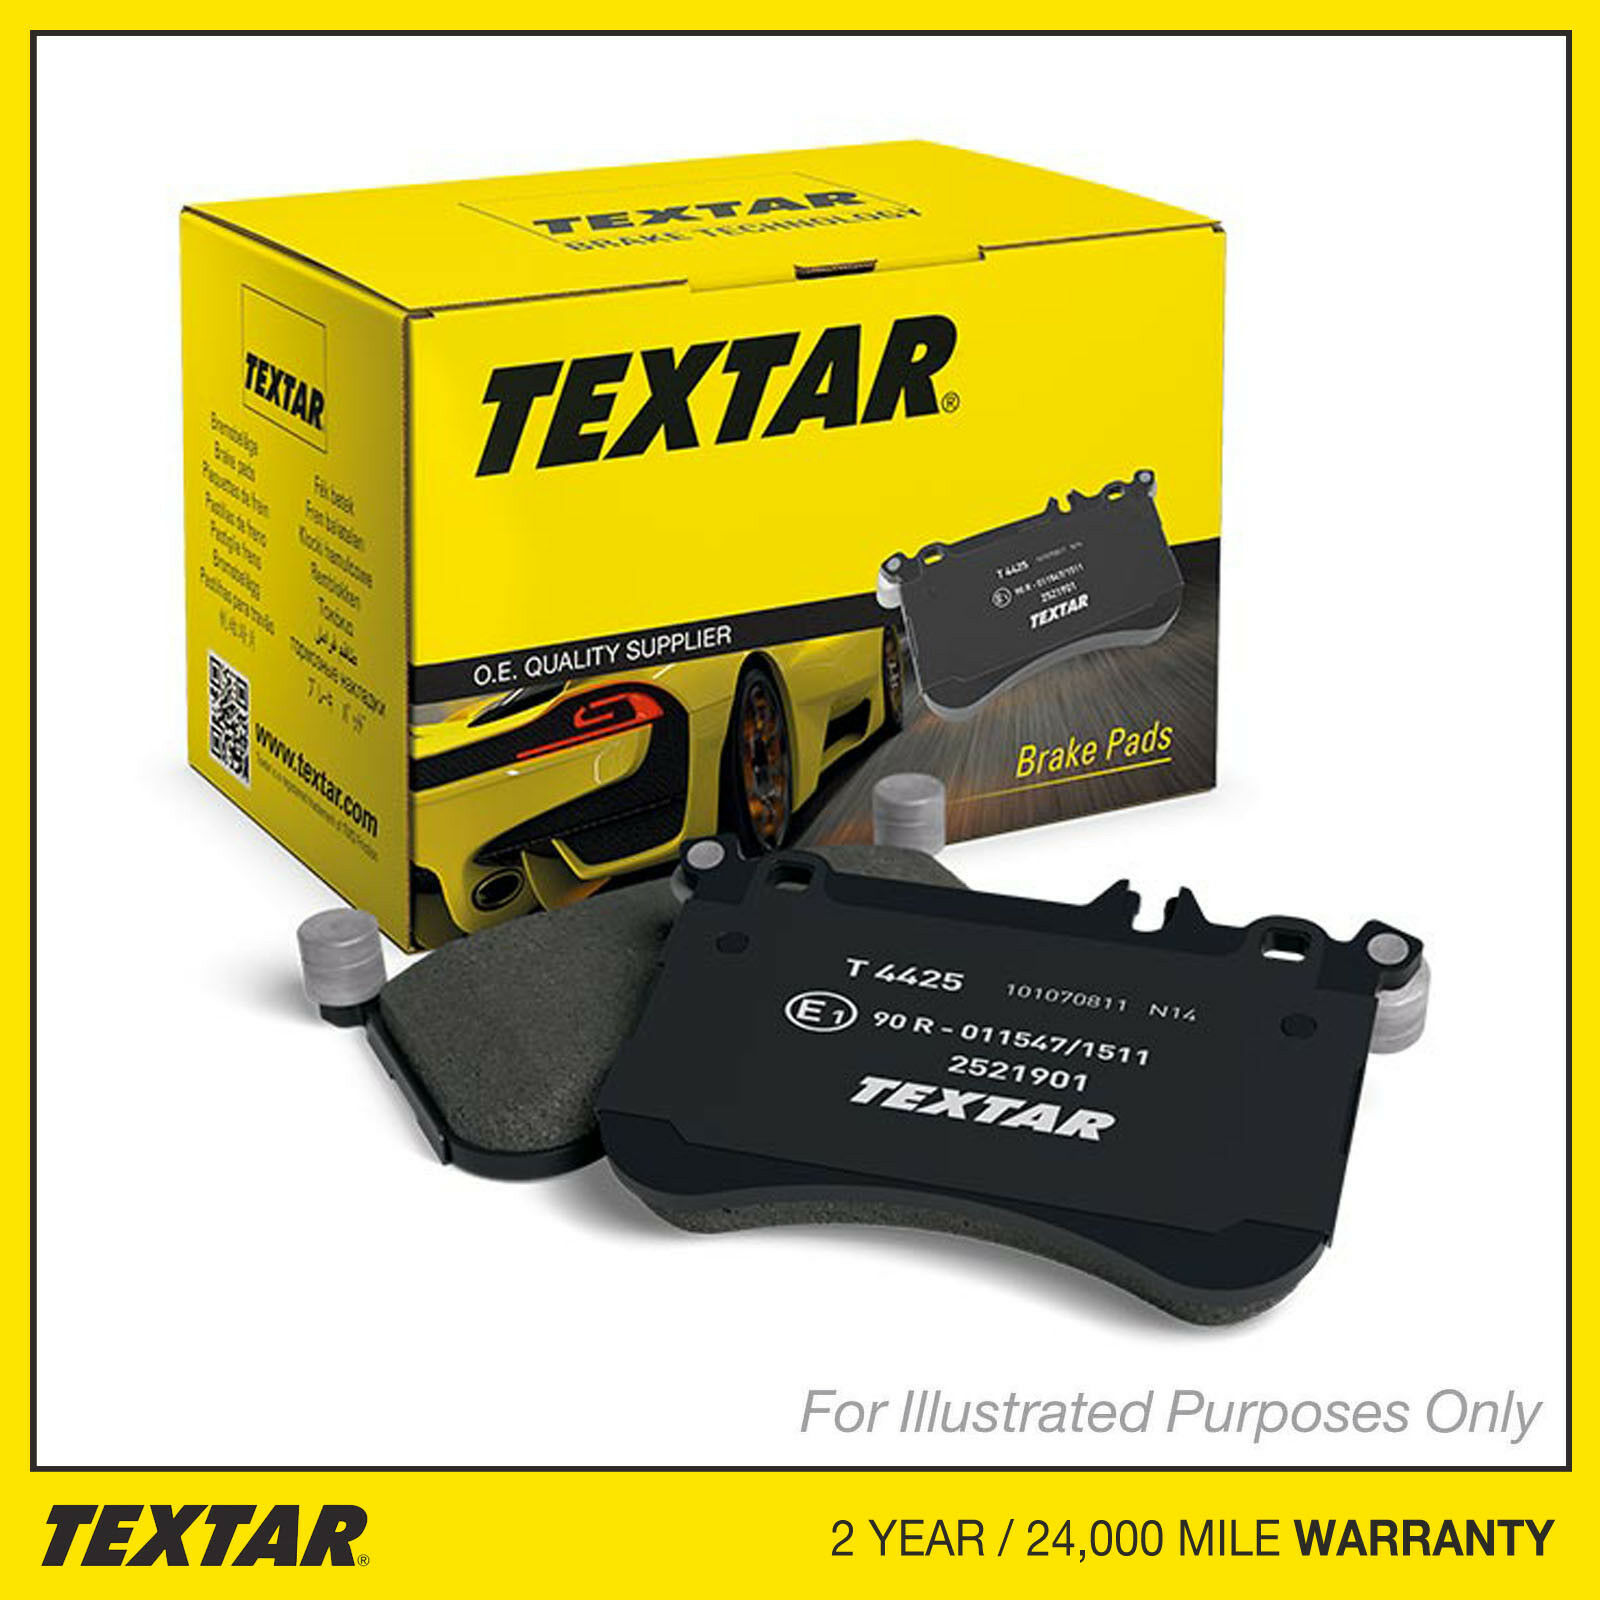 Fits Alfa Romeo Giulietta 940 1.8 TBi Genuine OE Textar Rear Disc Brake Pads Set